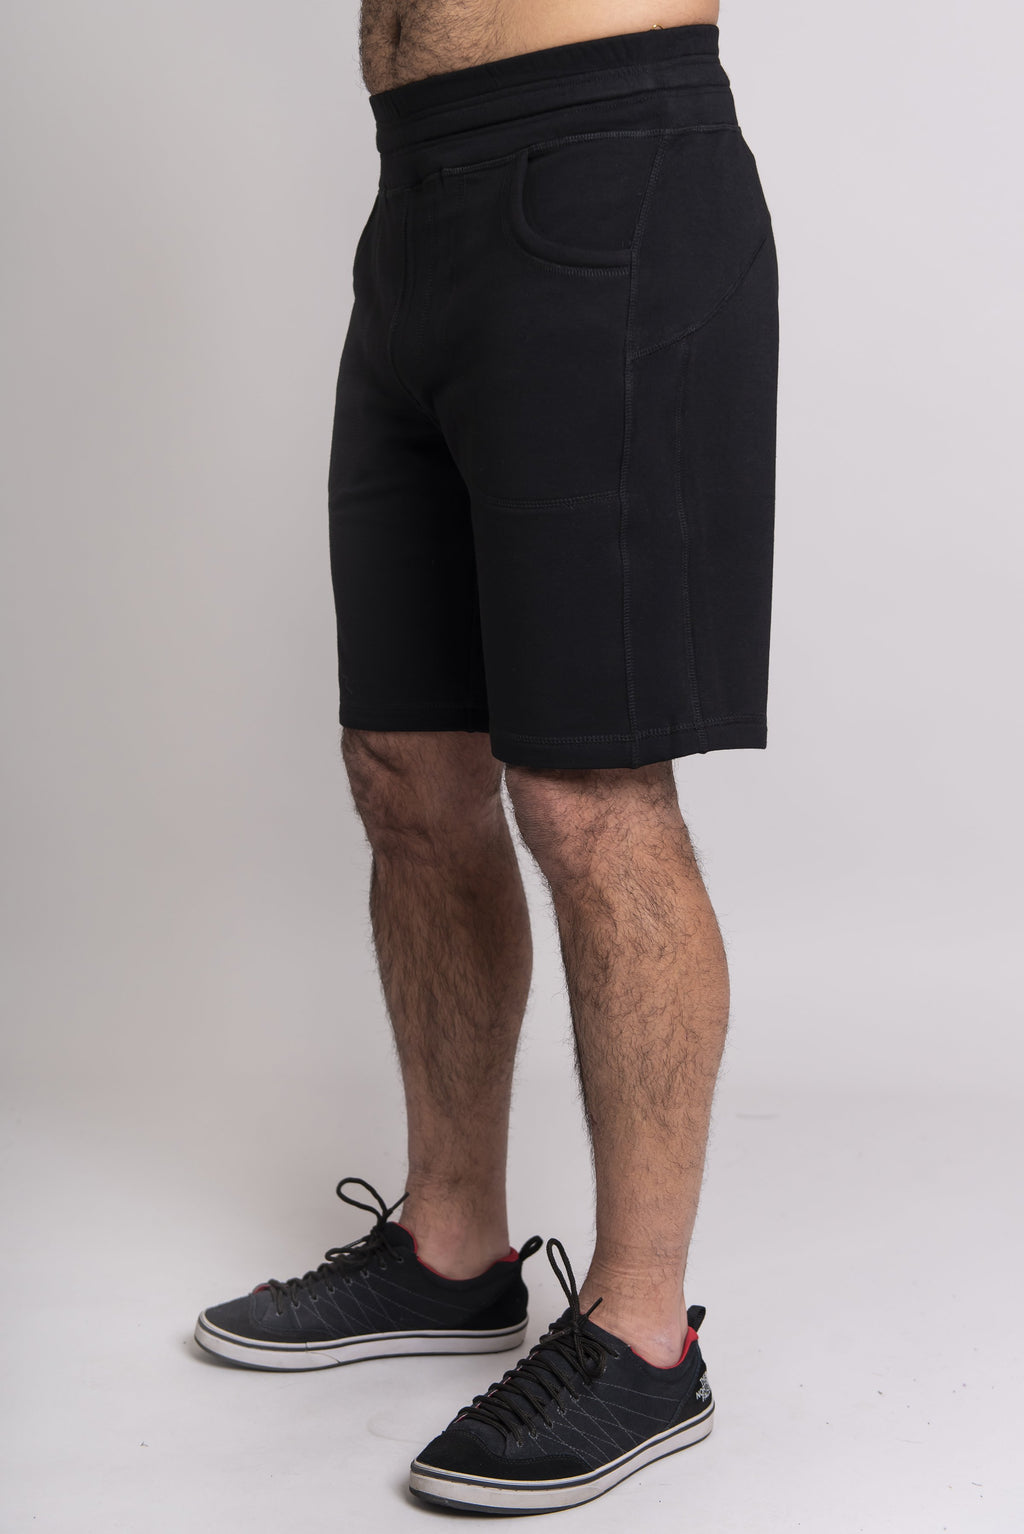 Jason Shorts, Black, Bamboo Fleece - Blue Sky Clothing Co